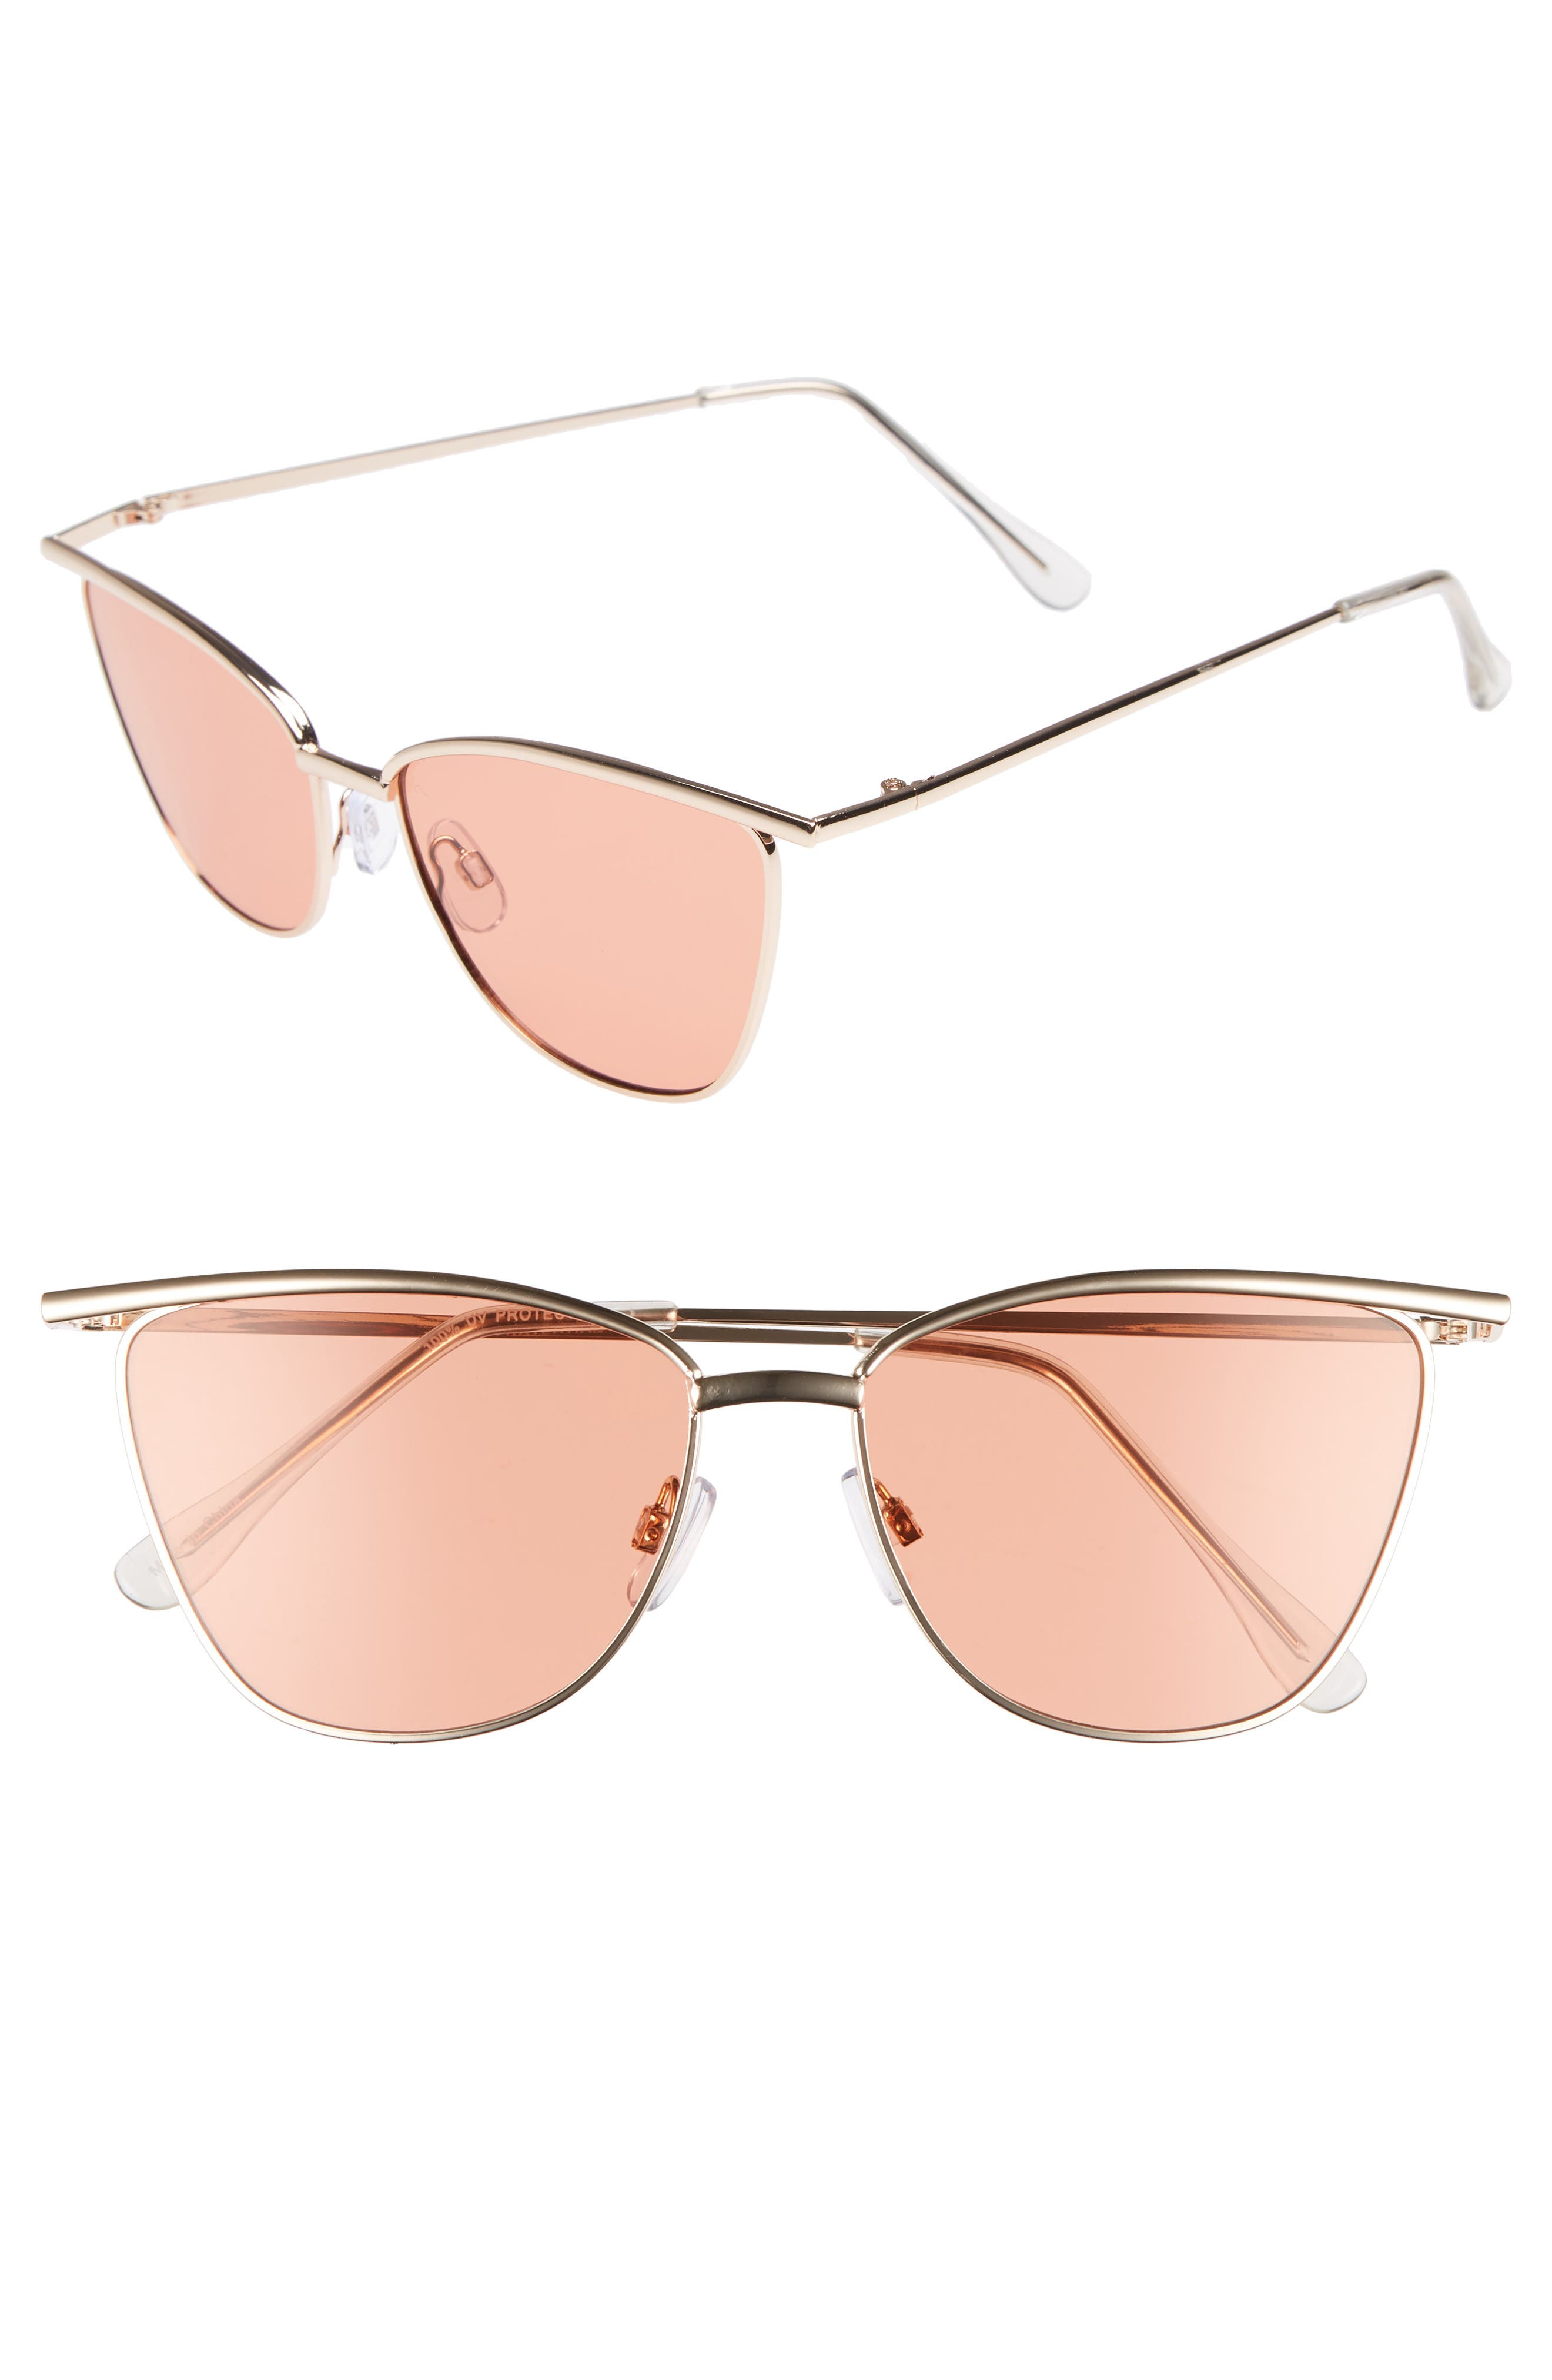 55mm Winged Cat Eye Sunglasses,                             Main thumbnail 1, color,                             710